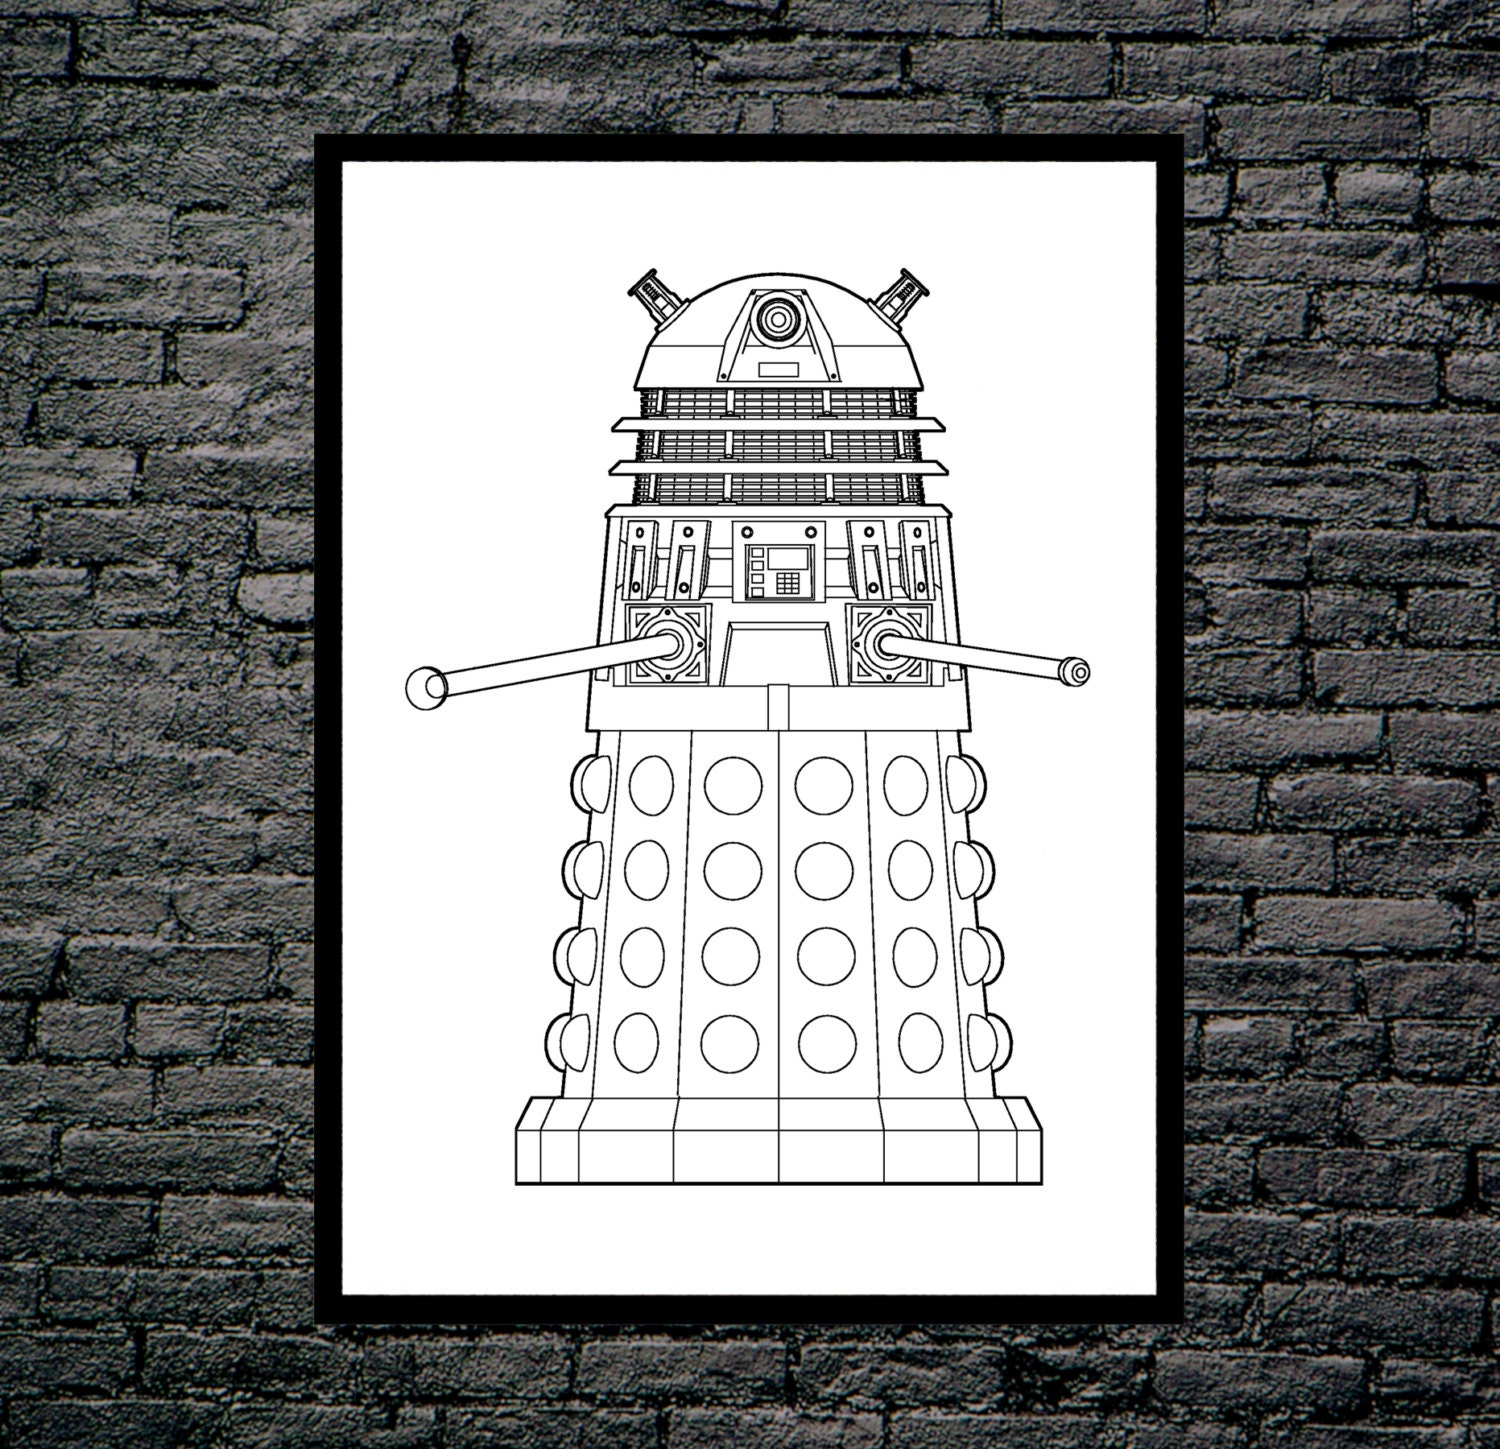 Doctor who dalek patent dr who dalek poster dalek blueprint doctor who dalek patent dr who dalek poster dalek blueprint dalek print dalek art dalek decor doctor who wall art p095 malvernweather Choice Image